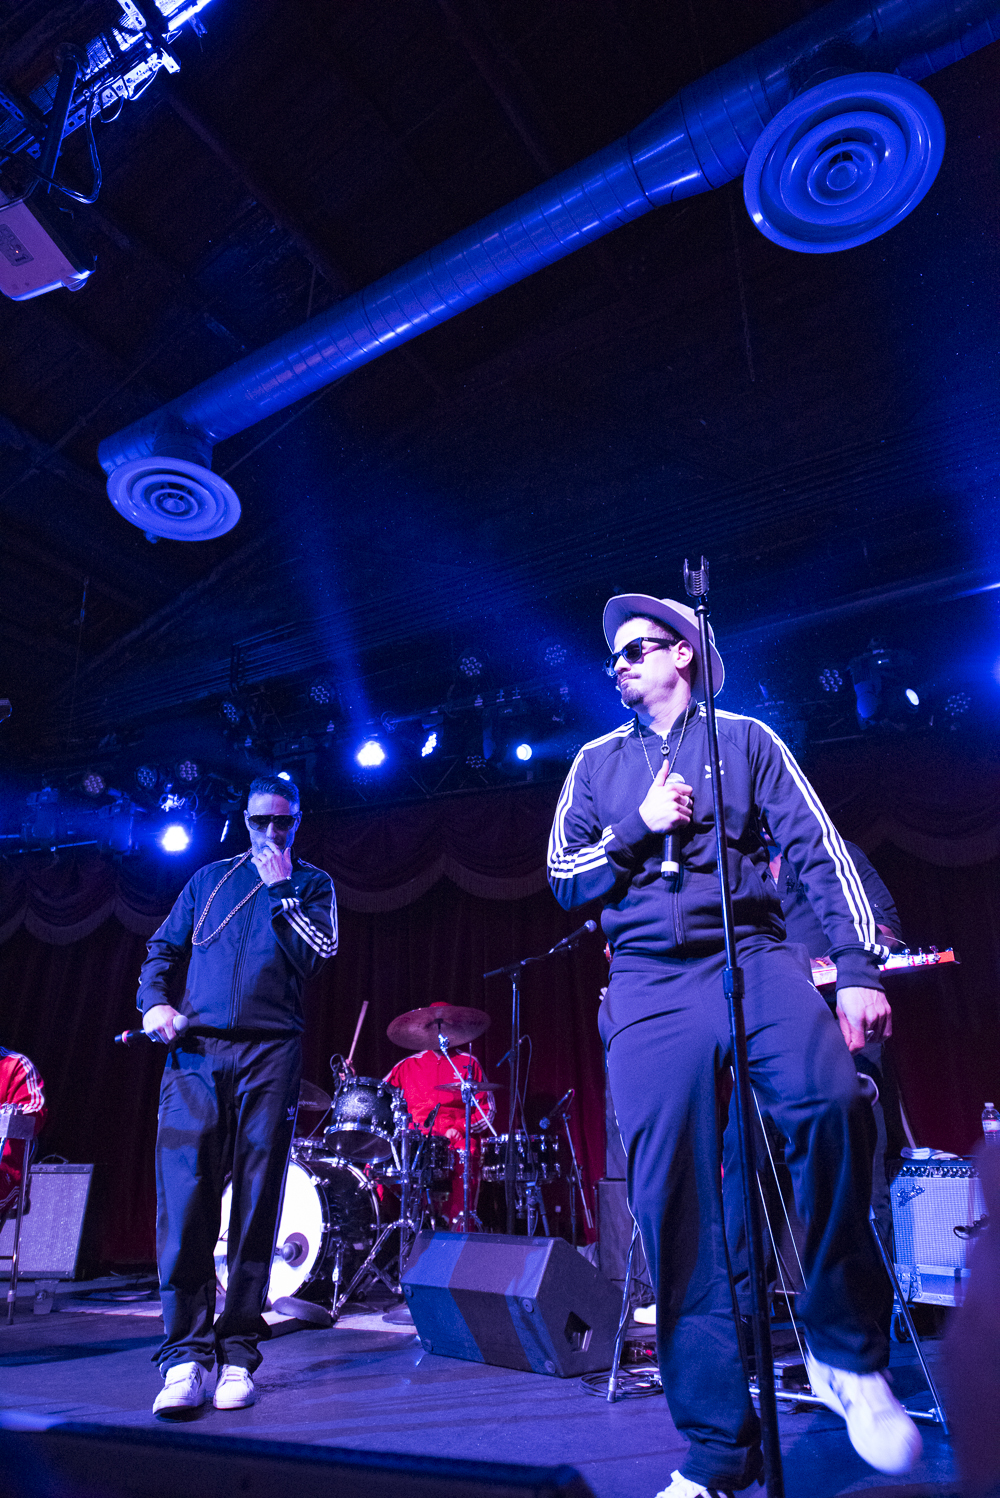 brooklyn-bowl-feb-5-2015--50.jpg